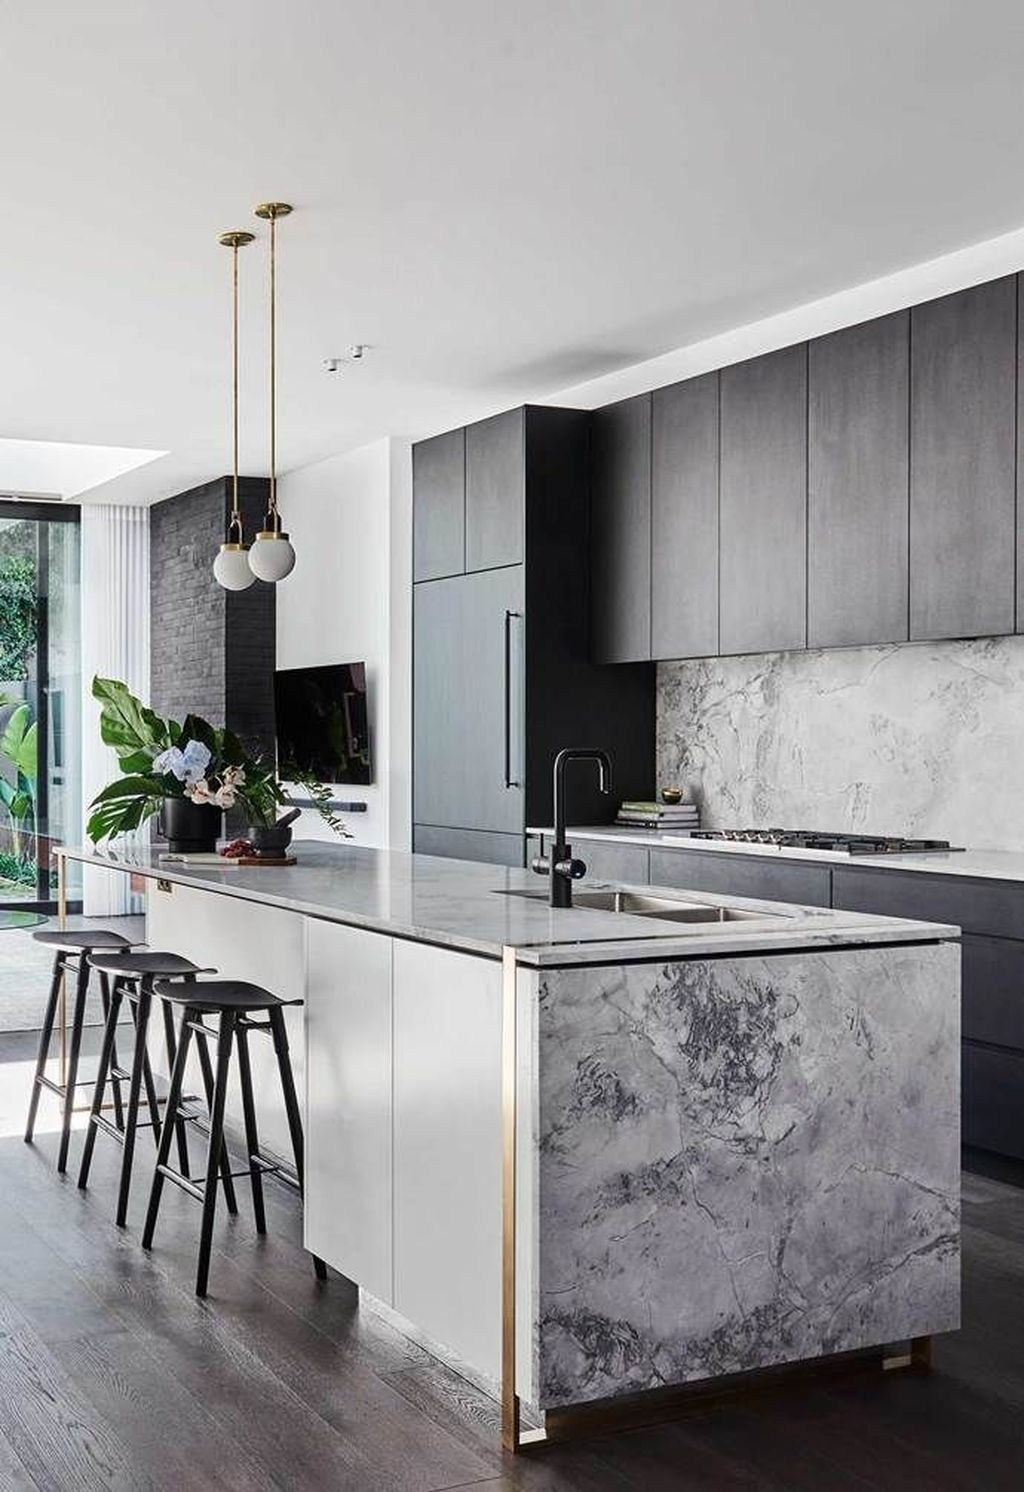 44 Amazing Modern Kitchen Design Ideas You Will Love - HOOMDESIGN